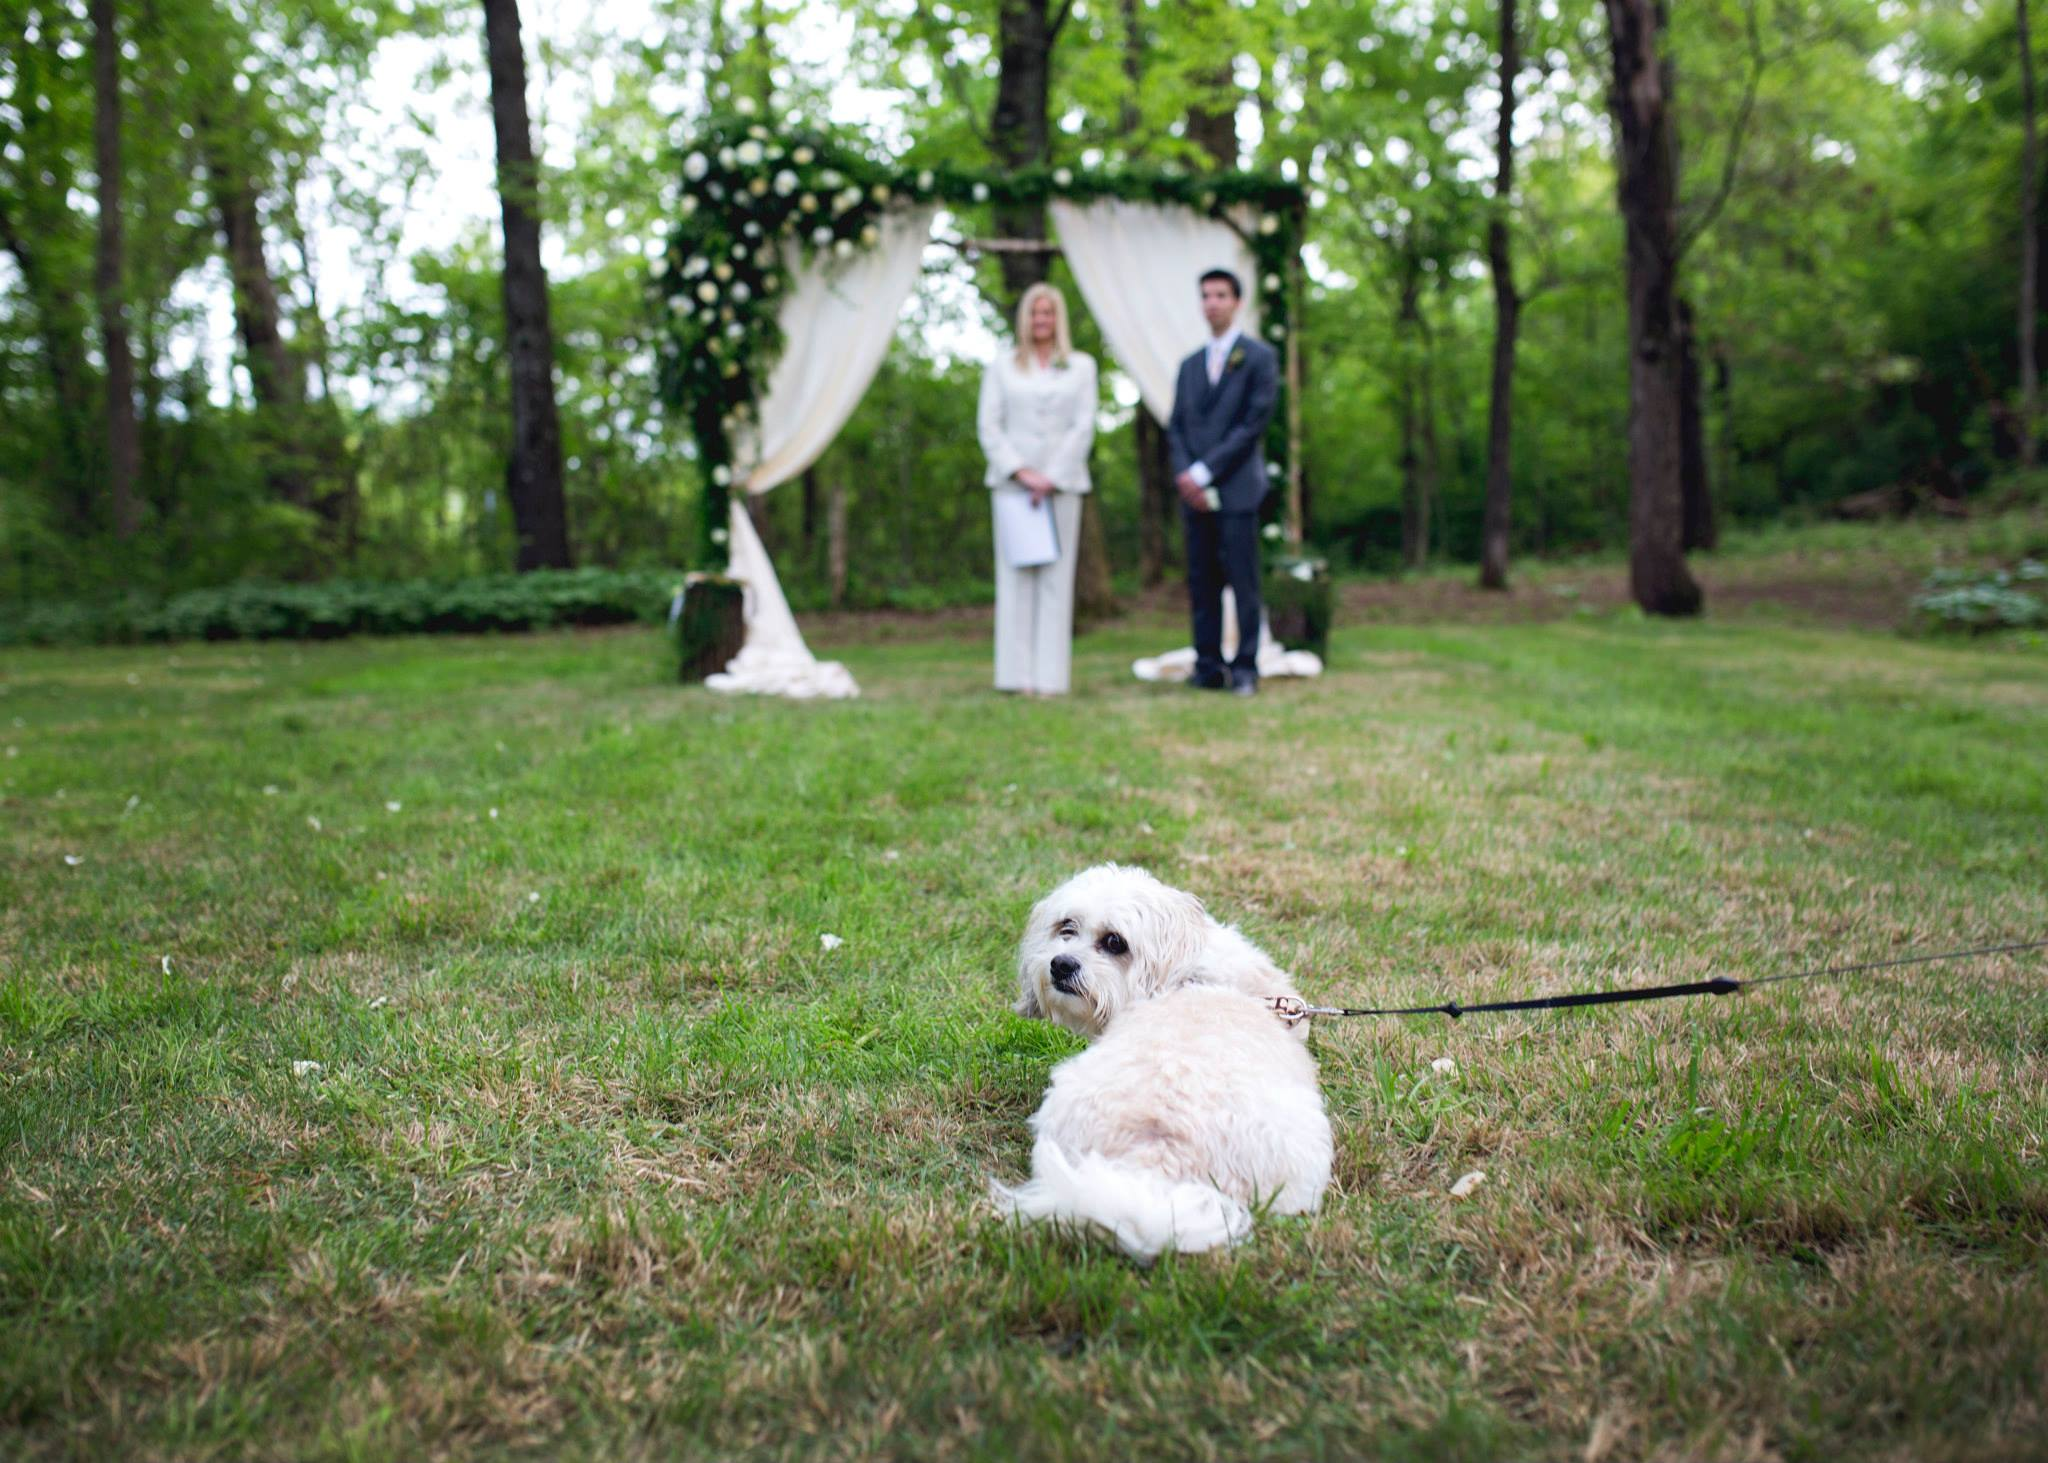 Pictures by Katie . Kelsey + Gueorgui 's dog Berba is adorable, y'all! He was a big hit at their wedding.